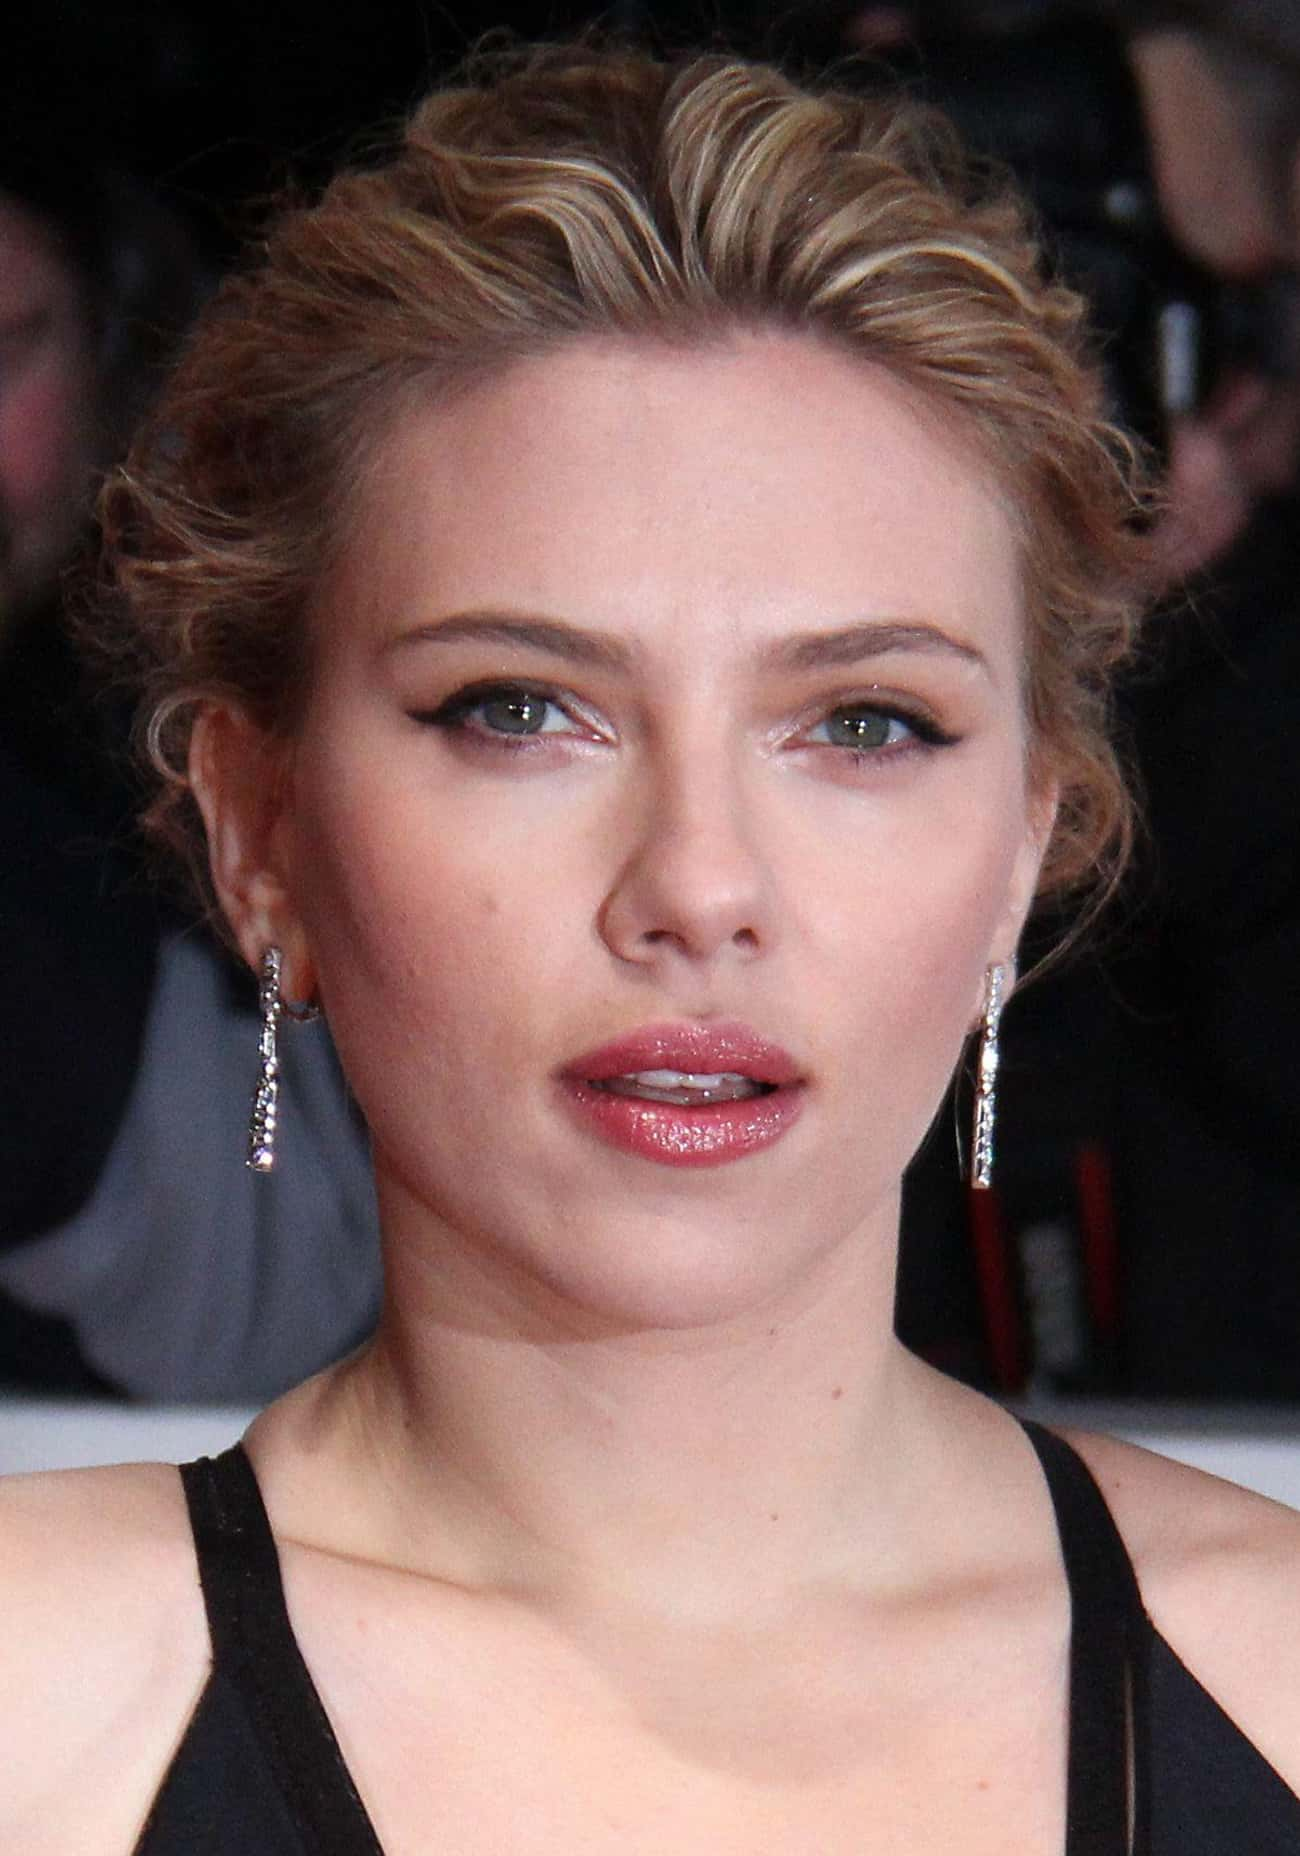 Scarlett Johansson is listed (or ranked) 1 on the list Famous People with Raspy Voices